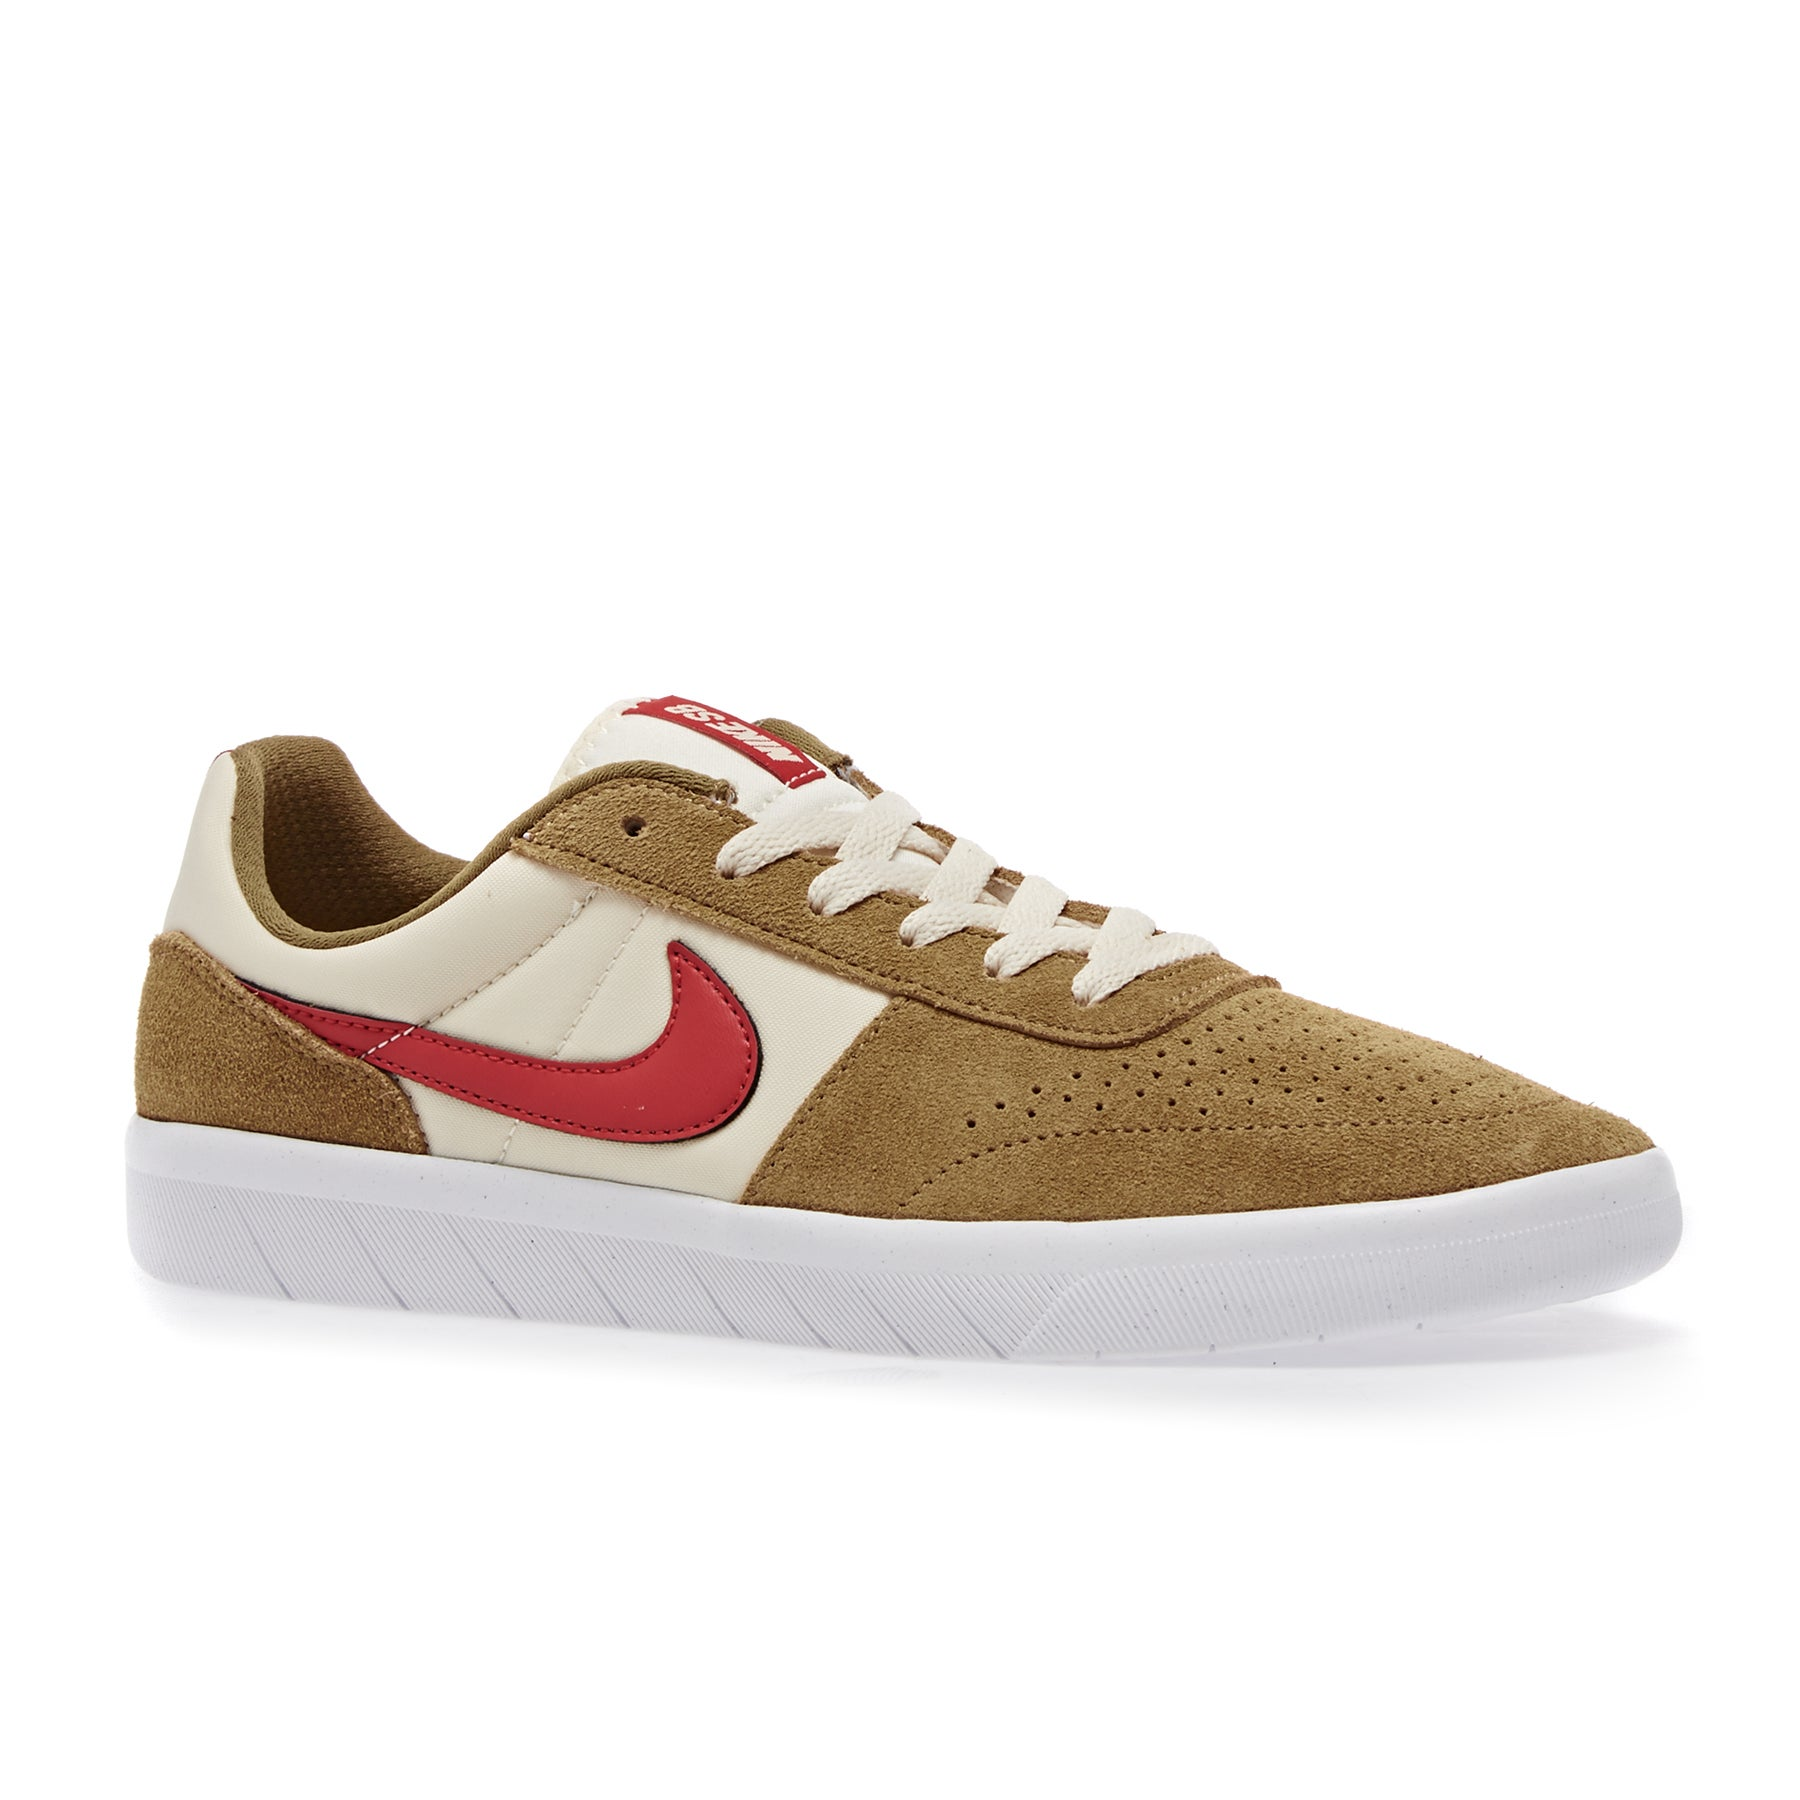 Nike SB Team Classic Shoes - Golden Beige Red Cream